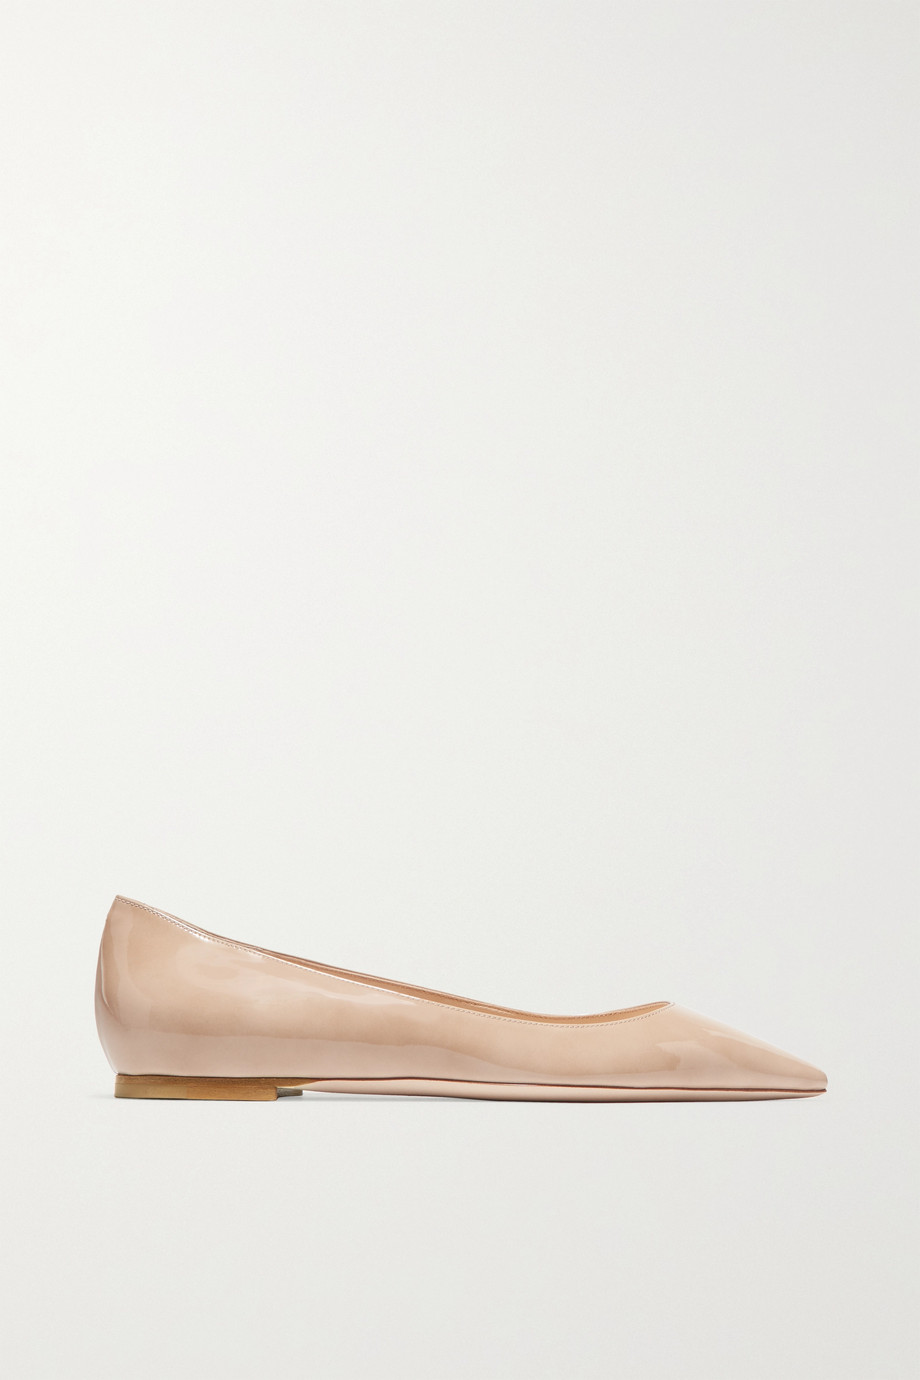 JIMMY CHOO Romy patent-leather point-toe flats